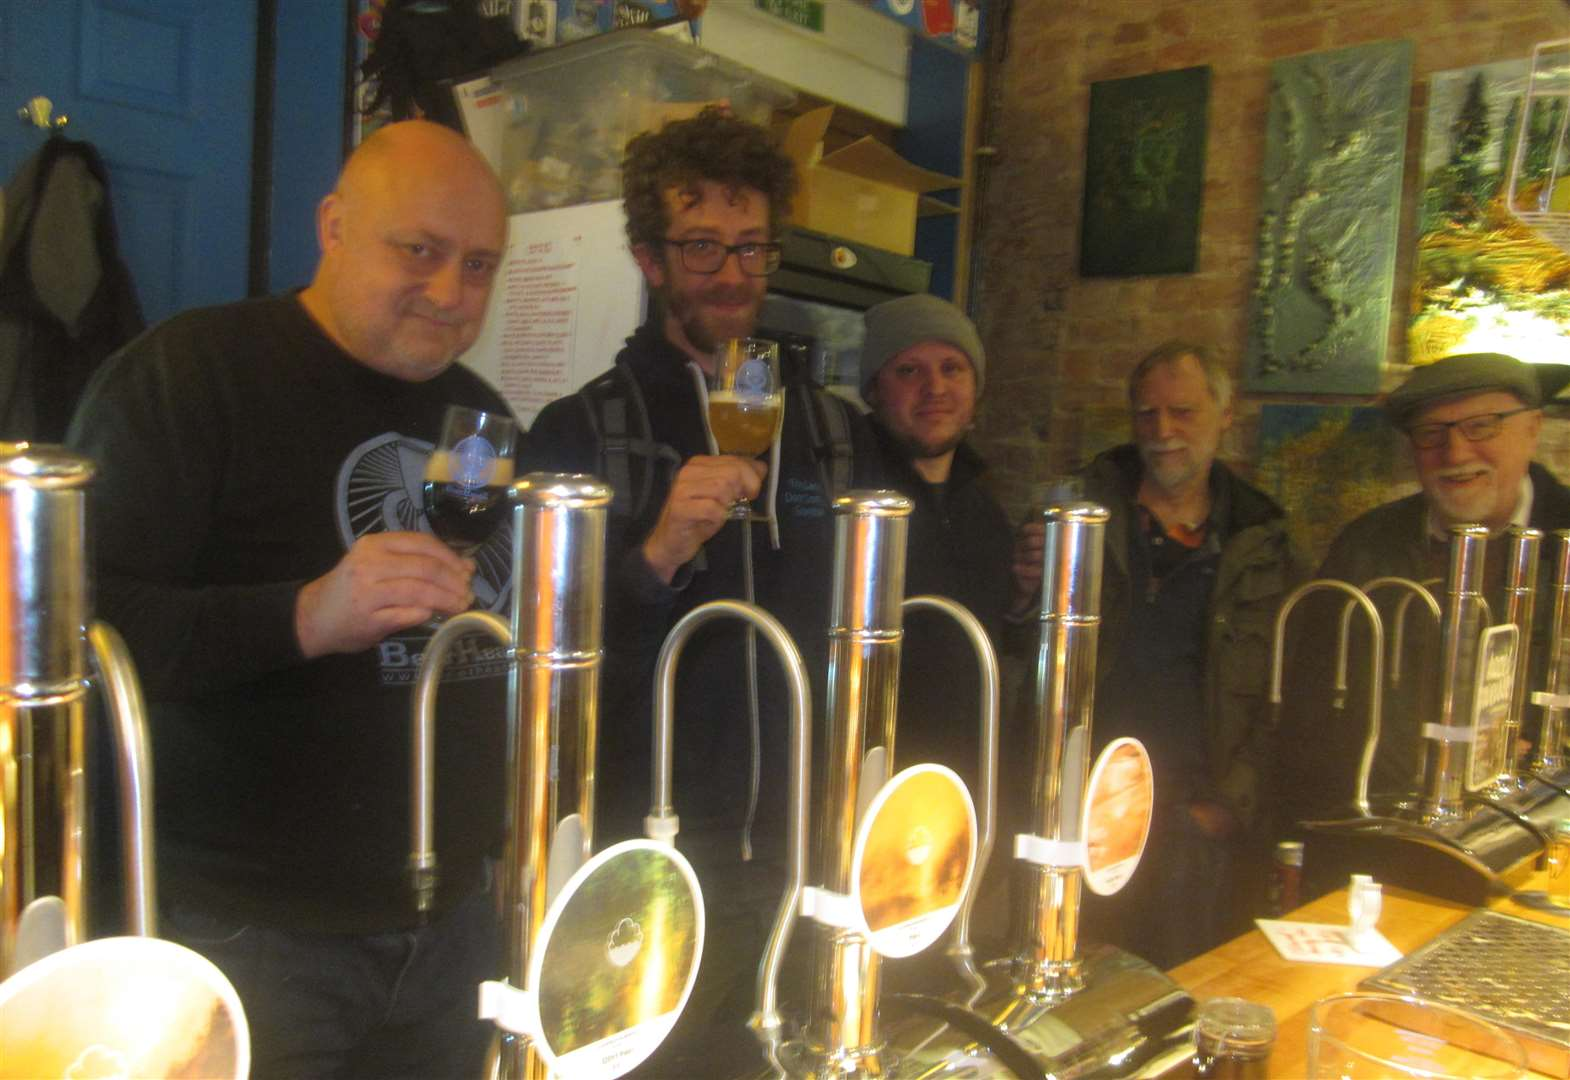 Harry Potter-style midnight launch at Beerheadz bar in Grantham